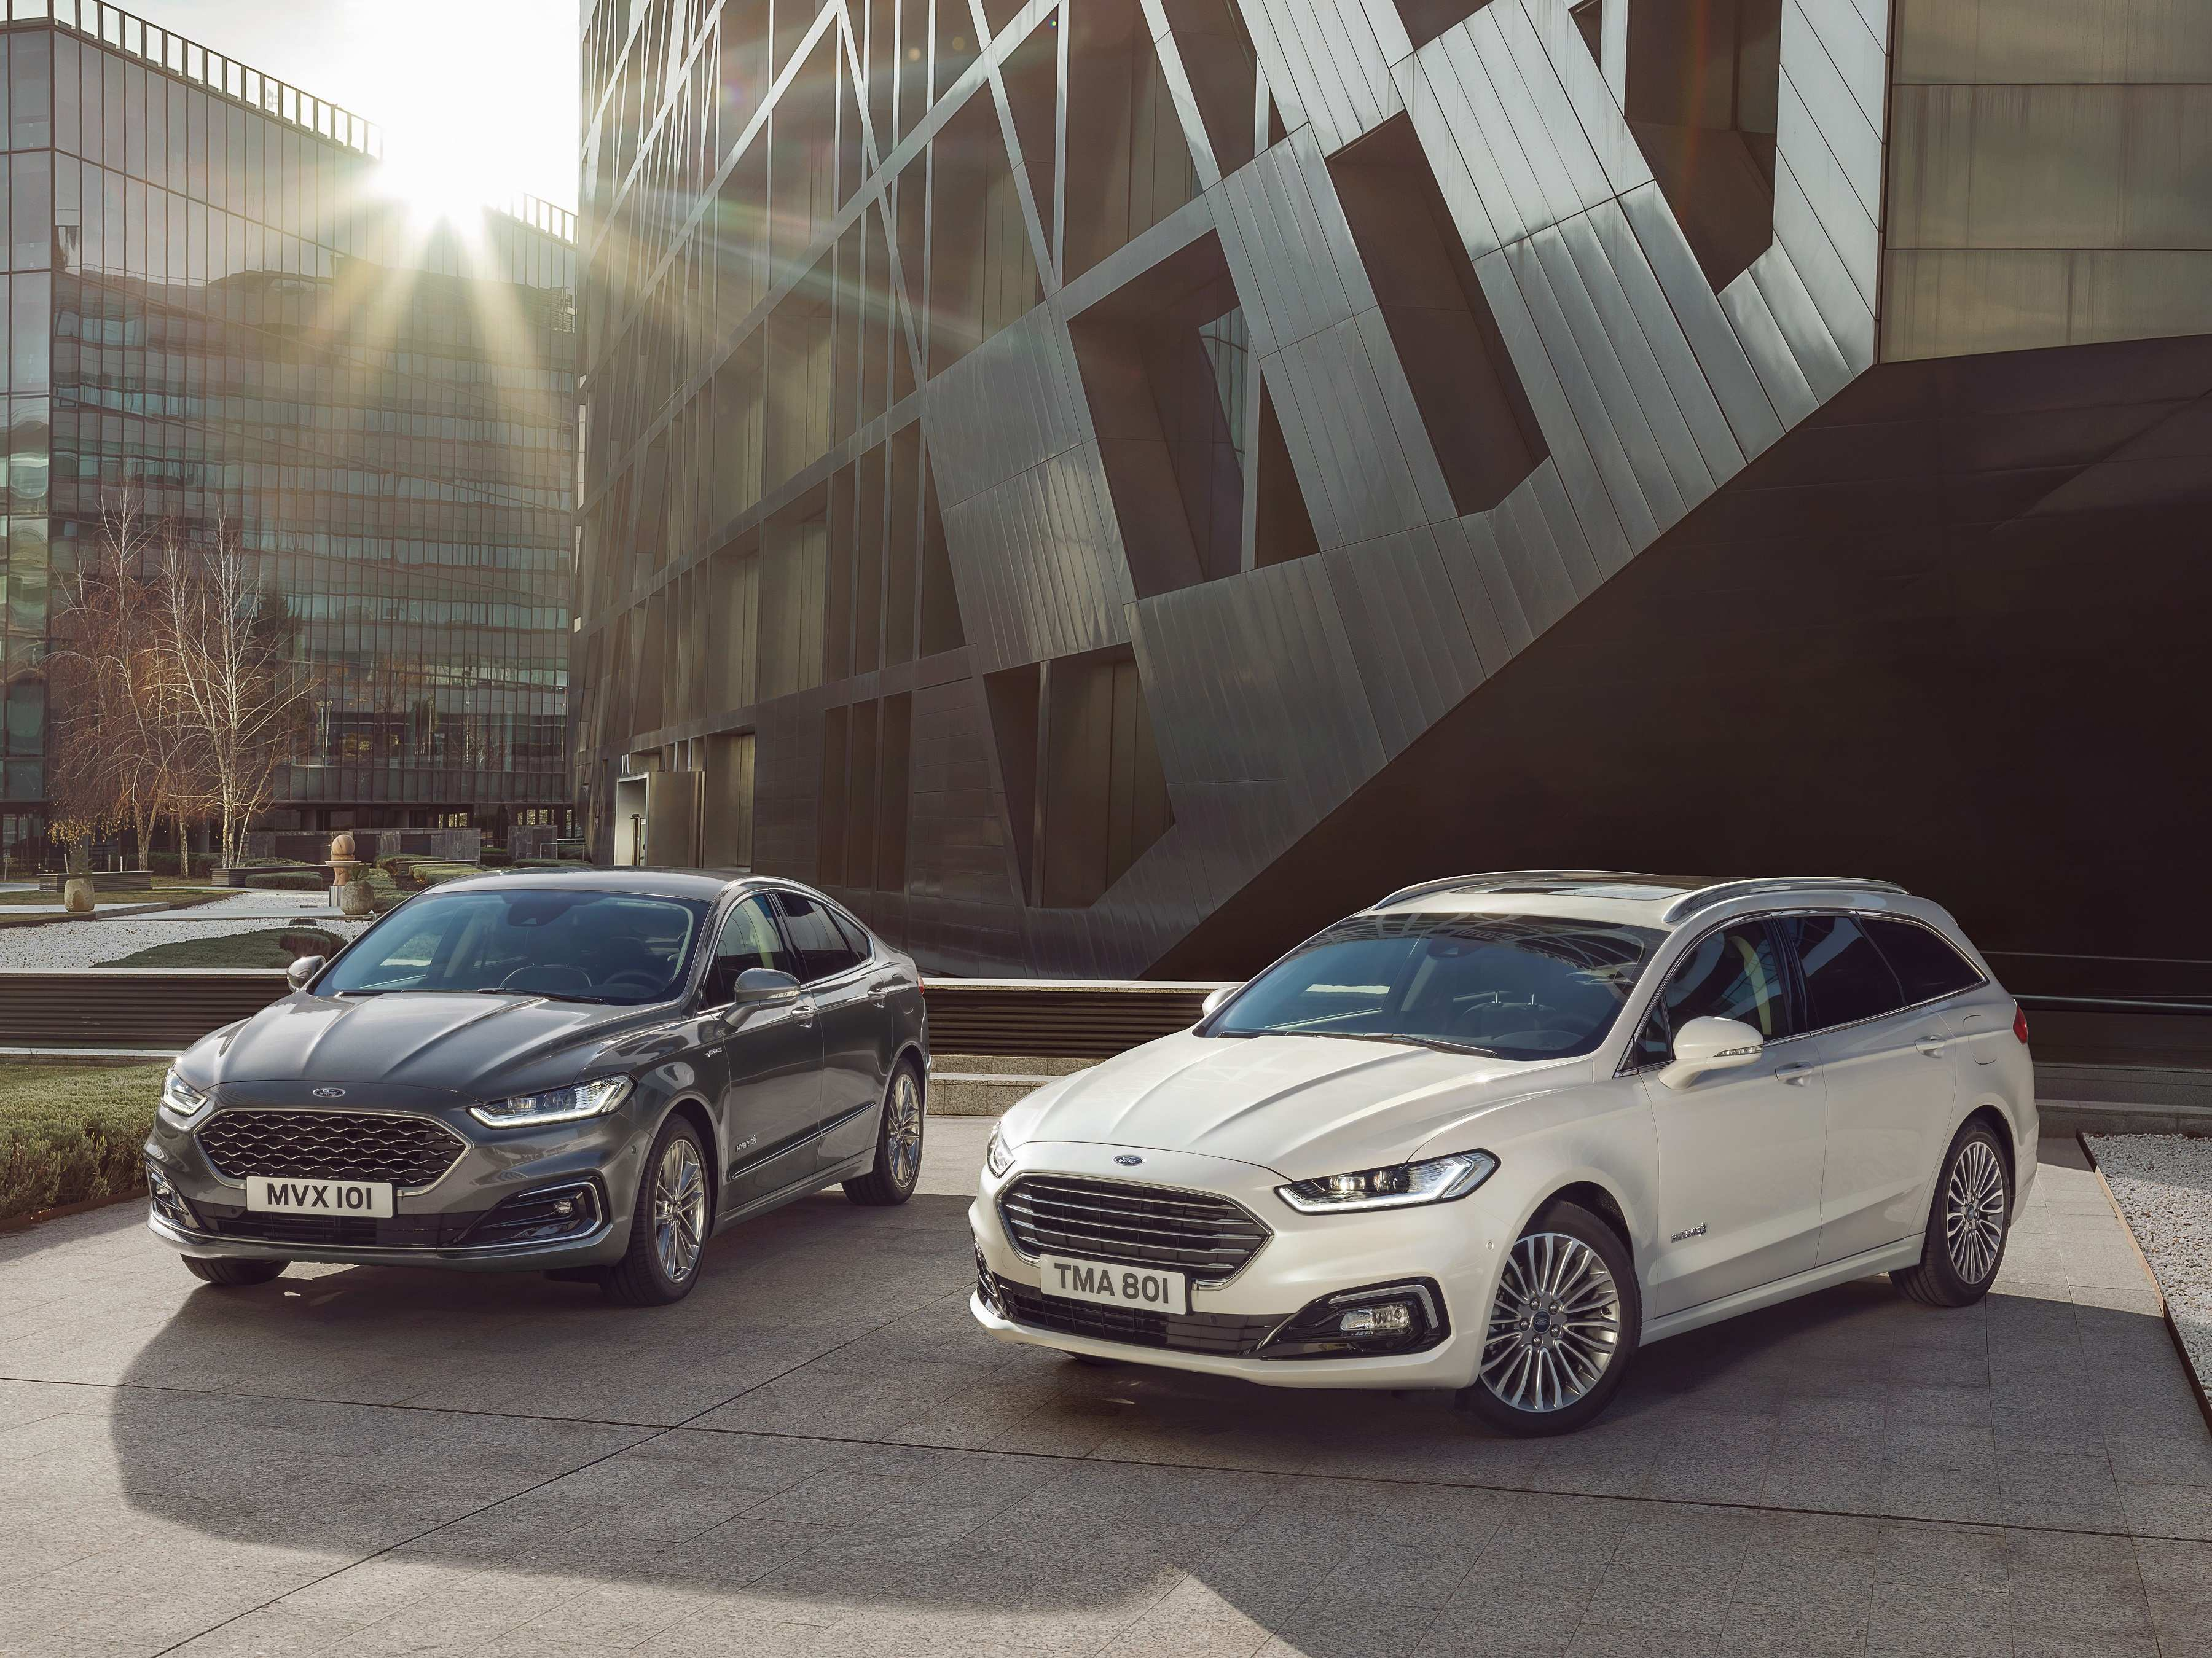 92 The Best 2019 Ford Mondeo Performance